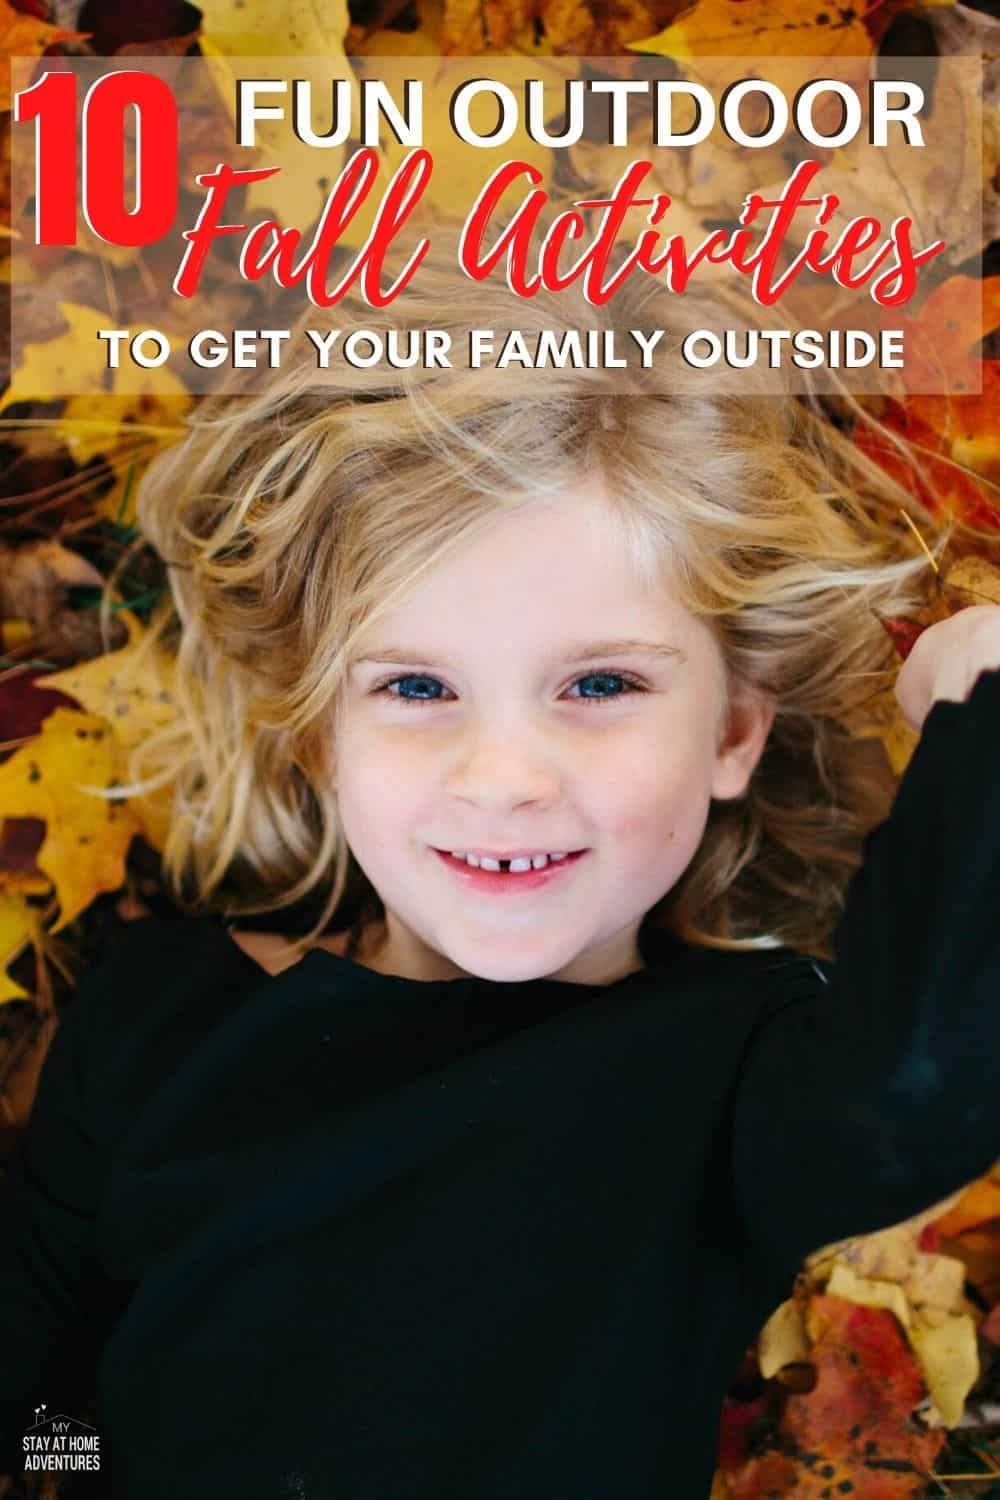 Learn ten frugal ways to get outside with our family this fall without breaking the budget — great ways to enjoy the outdoors and create memories. via @mystayathome